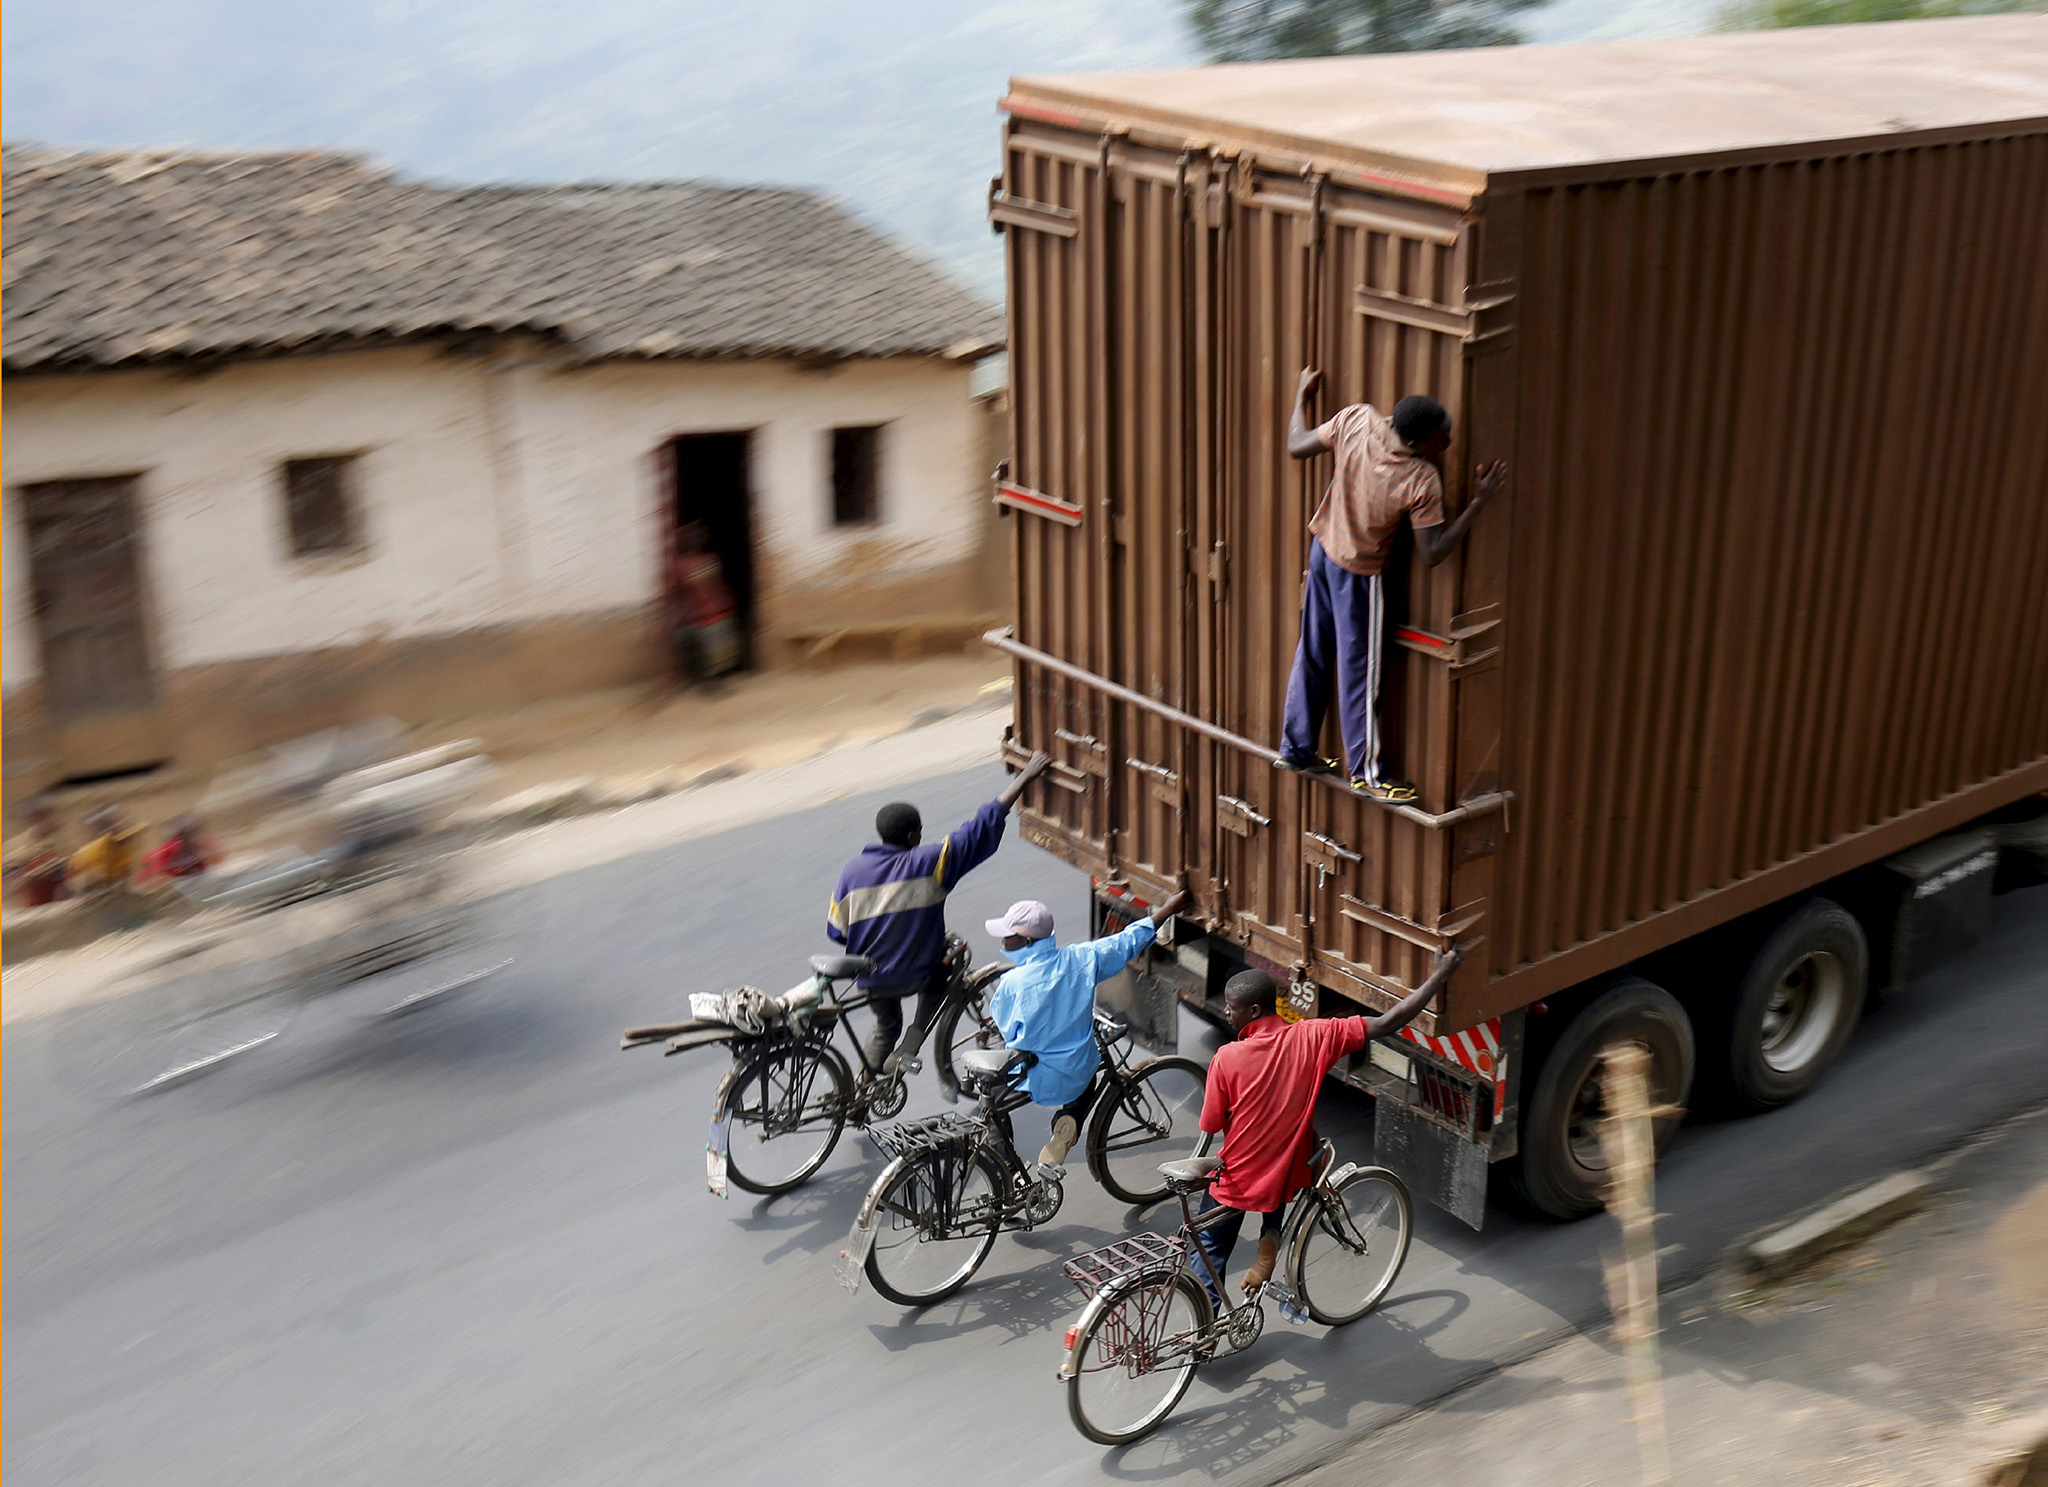 "Cylists hang to the back of a truck outside the capital Bujumbura, July 19, 2015,  as the country awaits next week's presidential elections. Each day scores of cyclists make the 45 kilometer downhill journey at breakneck speed from Bugarama to sell bananas, often hanging from the back of trucks for the return uphill trip.  REUTERS/Mike Hutchings       TPX IMAGES OF THE DAY REUTERS NEWS PICTURES HAS NOW MADE IT EASIER TO FIND THE BEST PHOTOS FROM THE MOST IMPORTANT STORIES AND TOP STANDALONES EACH DAY. Search for ""TPX"" in the IPTC Supplemental Category field or ""IMAGES OF THE DAY"" in the Caption field and you will find a selection of 80-100 of our daily Top Pictures. REUTERS NEWS PICTURES."